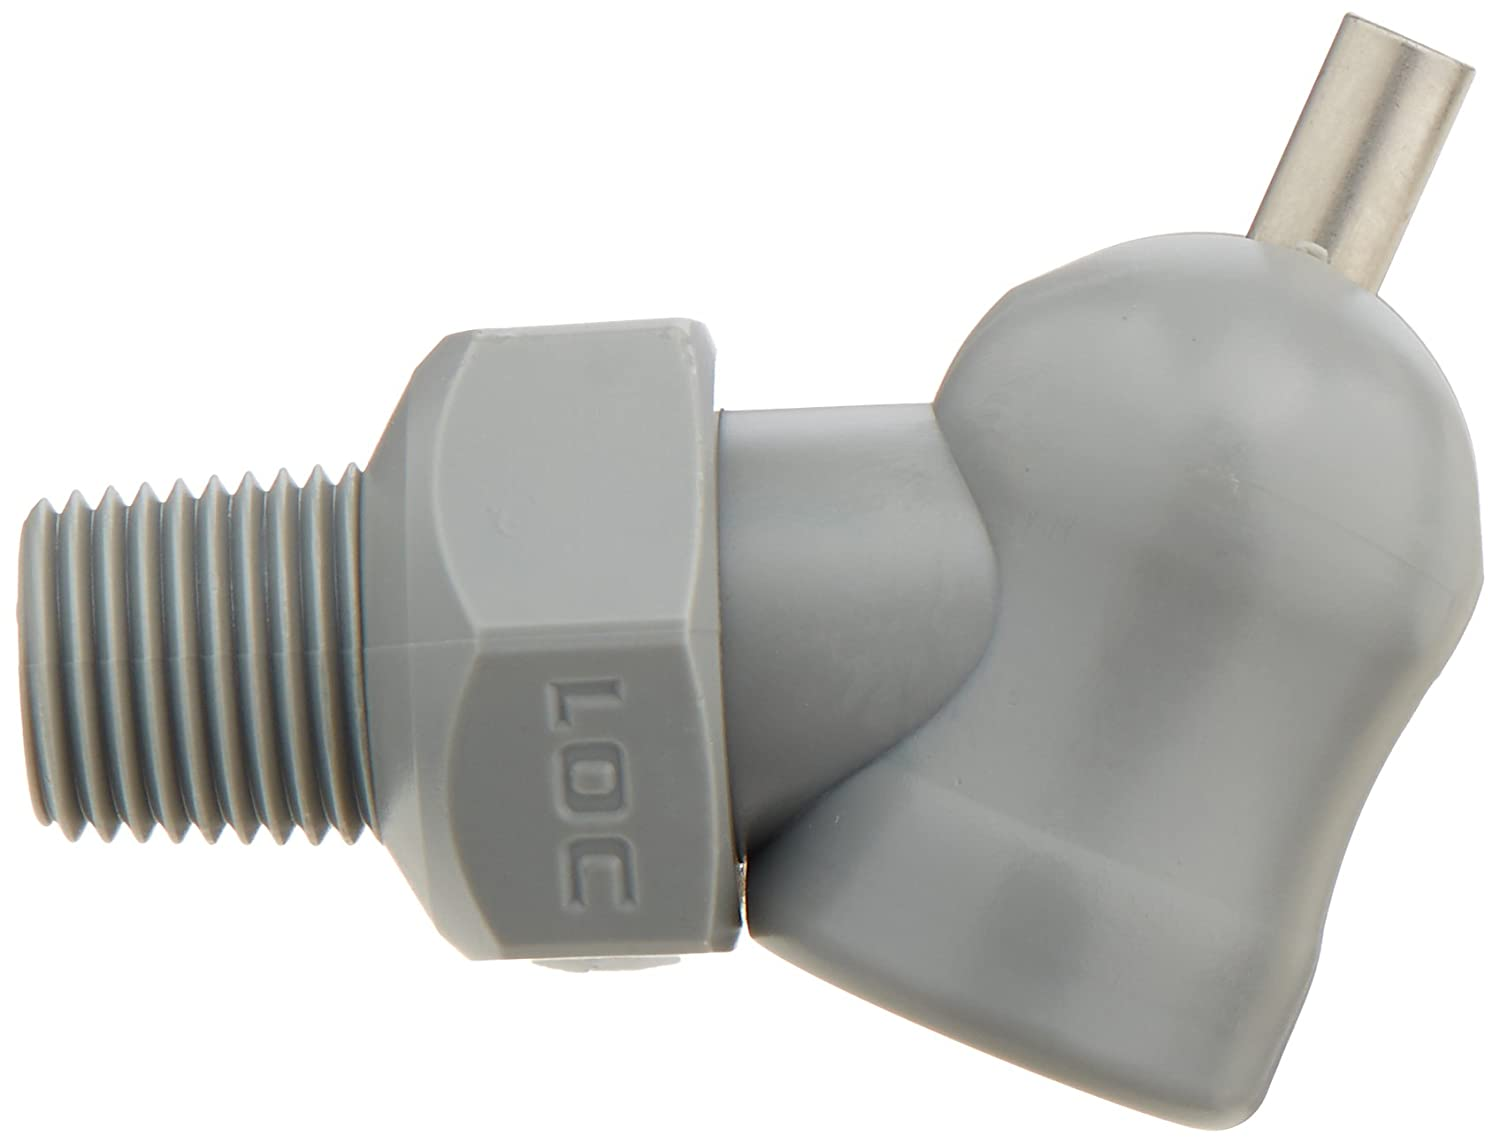 XR Style with Adjustment Lever Pack of 11 0.086 x 0.25 Loc-Line 79045-G Acetal HPT Nozzles Thread Size 1//8 Gray